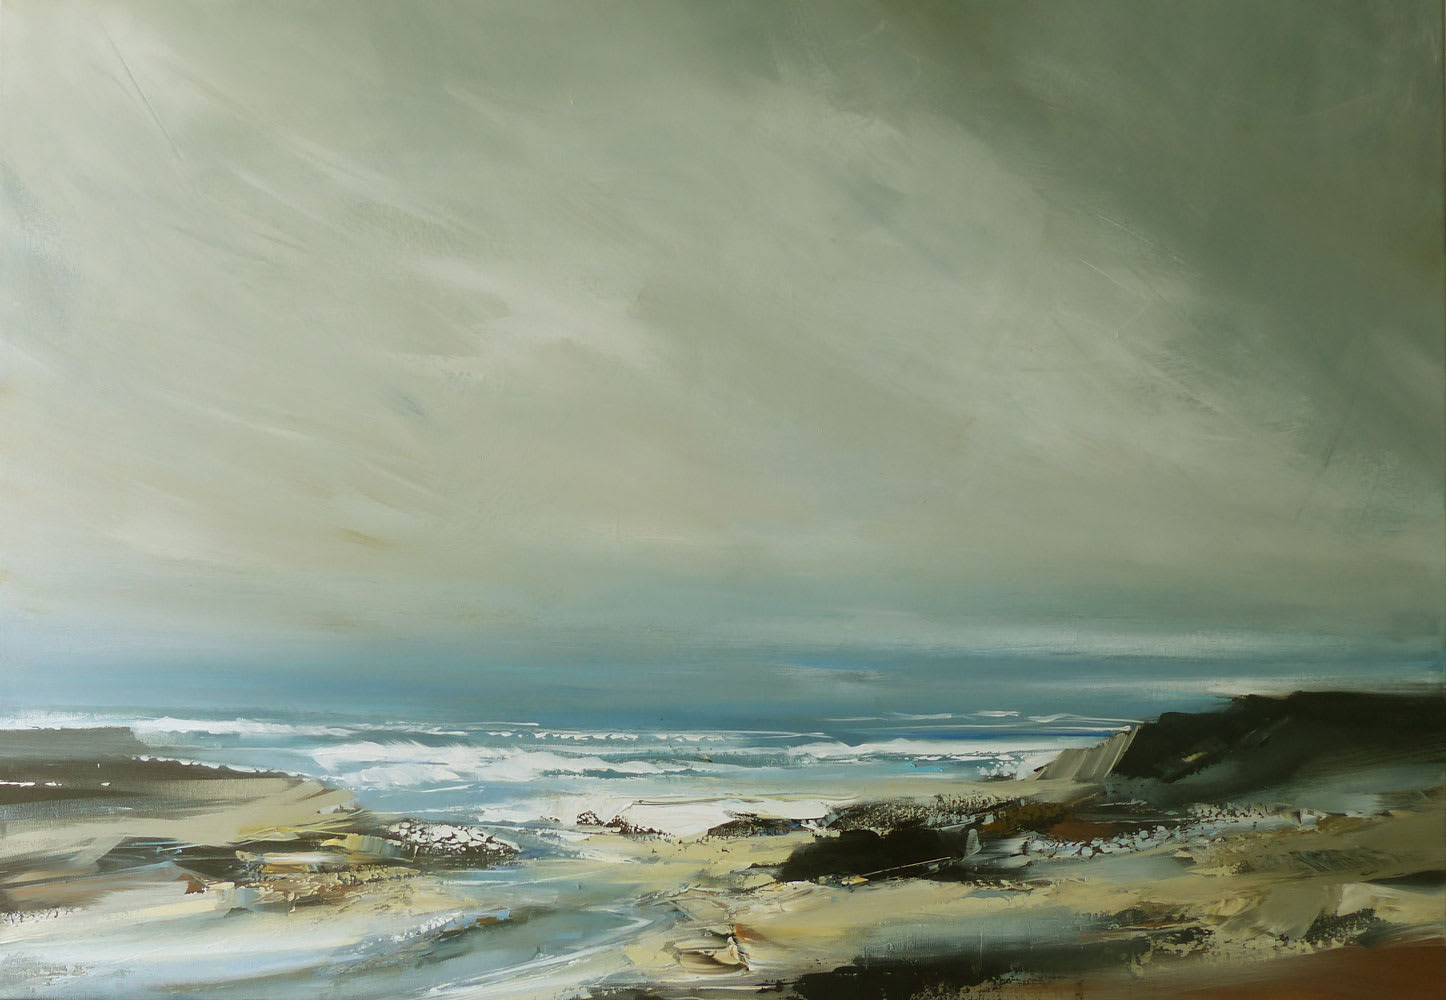 """<span class=""""link fancybox-details-link""""><a href=""""/artists/92-jenny-hirst/works/7117-jenny-hirst-inlet-2020/"""">View Detail Page</a></span><div class=""""artist""""><strong>Jenny Hirst</strong></div> b. 1954 <div class=""""title""""><em>Inlet</em>, 2020</div> <div class=""""medium"""">acrylic on canvas</div> <div class=""""dimensions"""">100cm x 70cm</div><div class=""""copyright_line"""">Own Art £140 x 10 months, 0% APR</div>"""